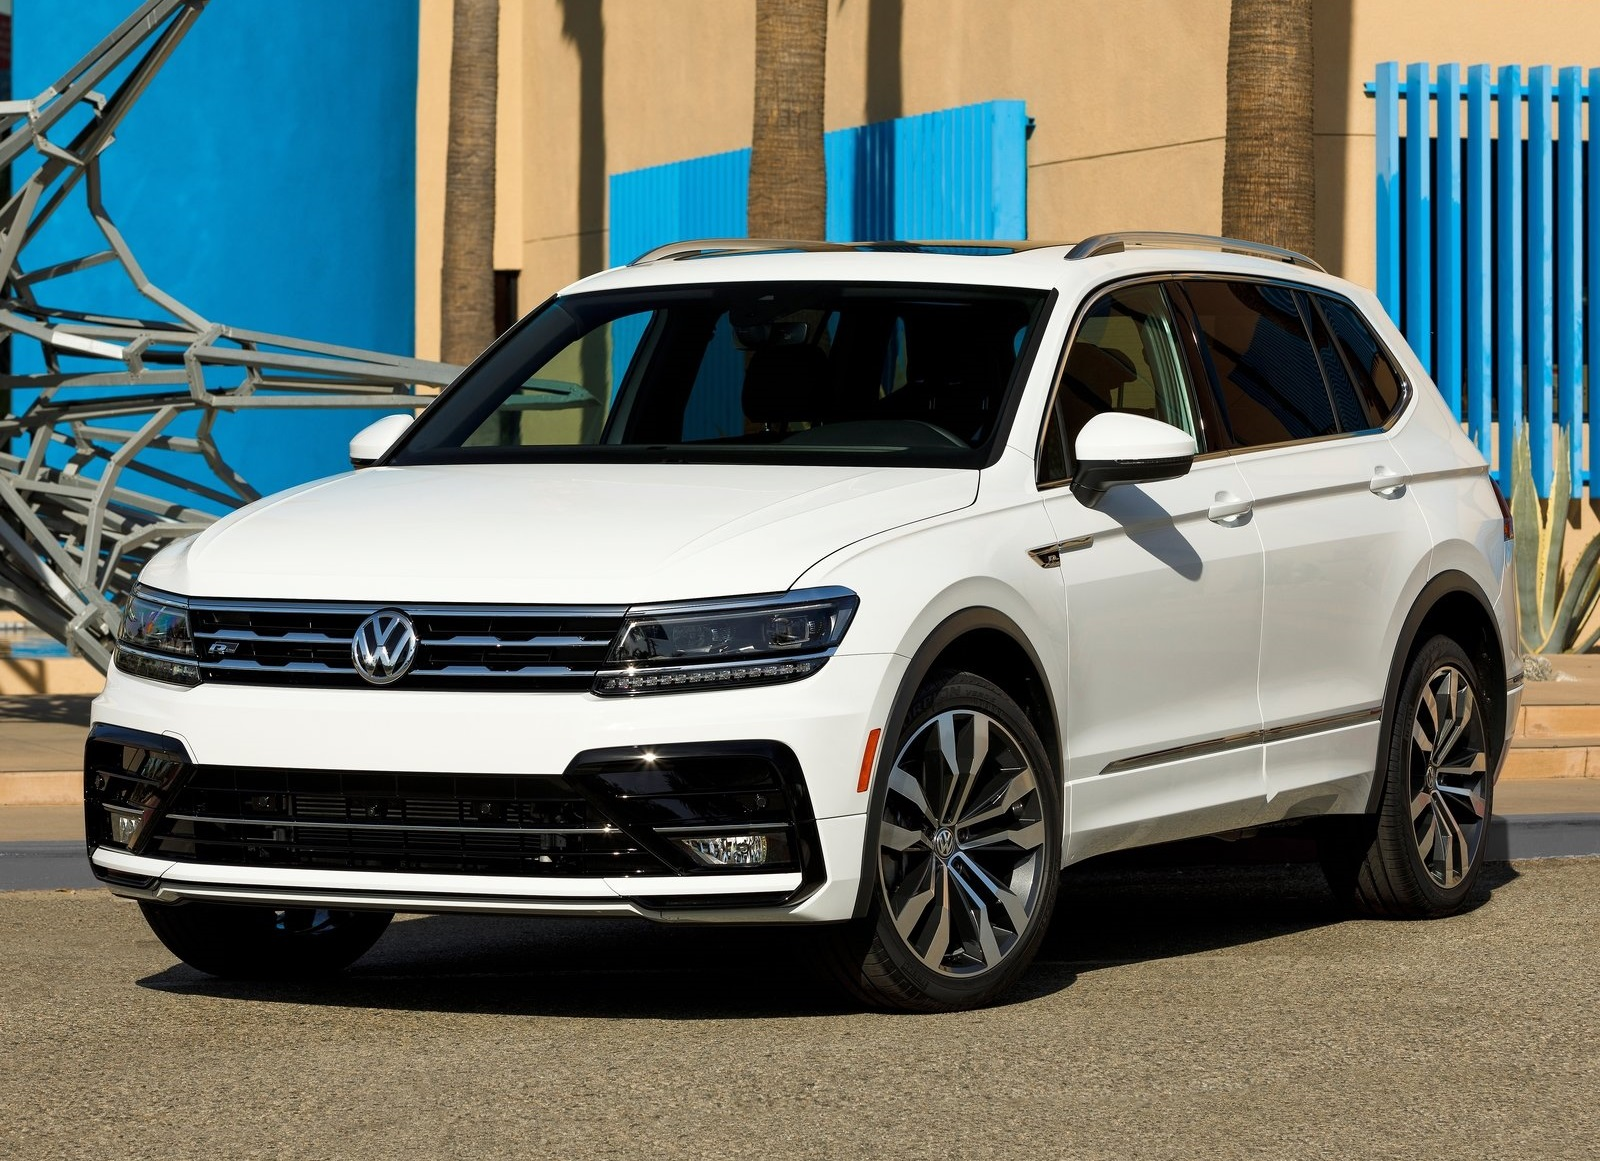 volkswagen tiguan r line 2018 con aspecto m s deportivo autos y moda m xico. Black Bedroom Furniture Sets. Home Design Ideas